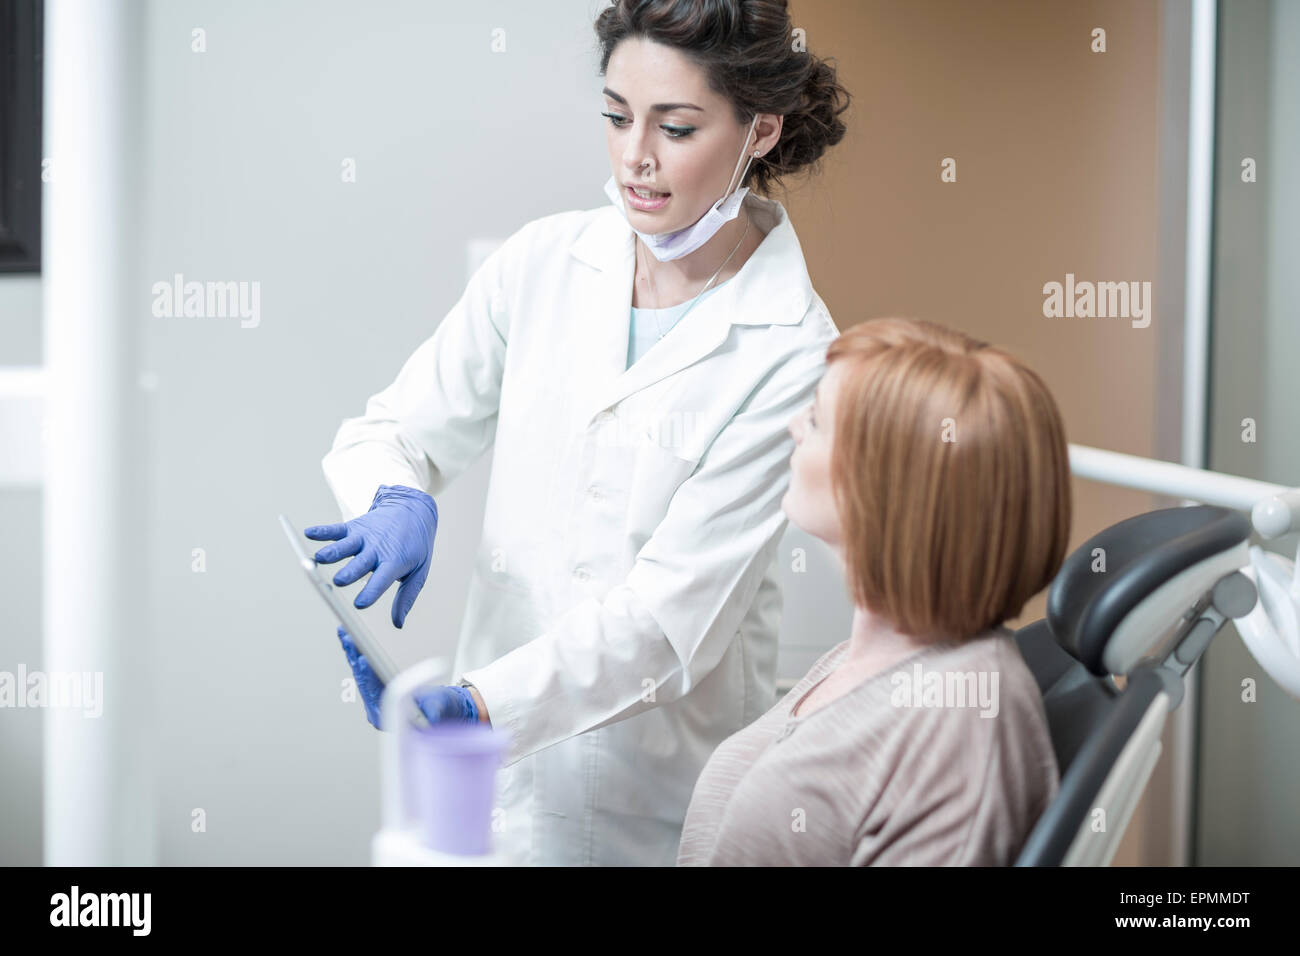 Dentist explaining a procedure and results with a patient - Stock Image